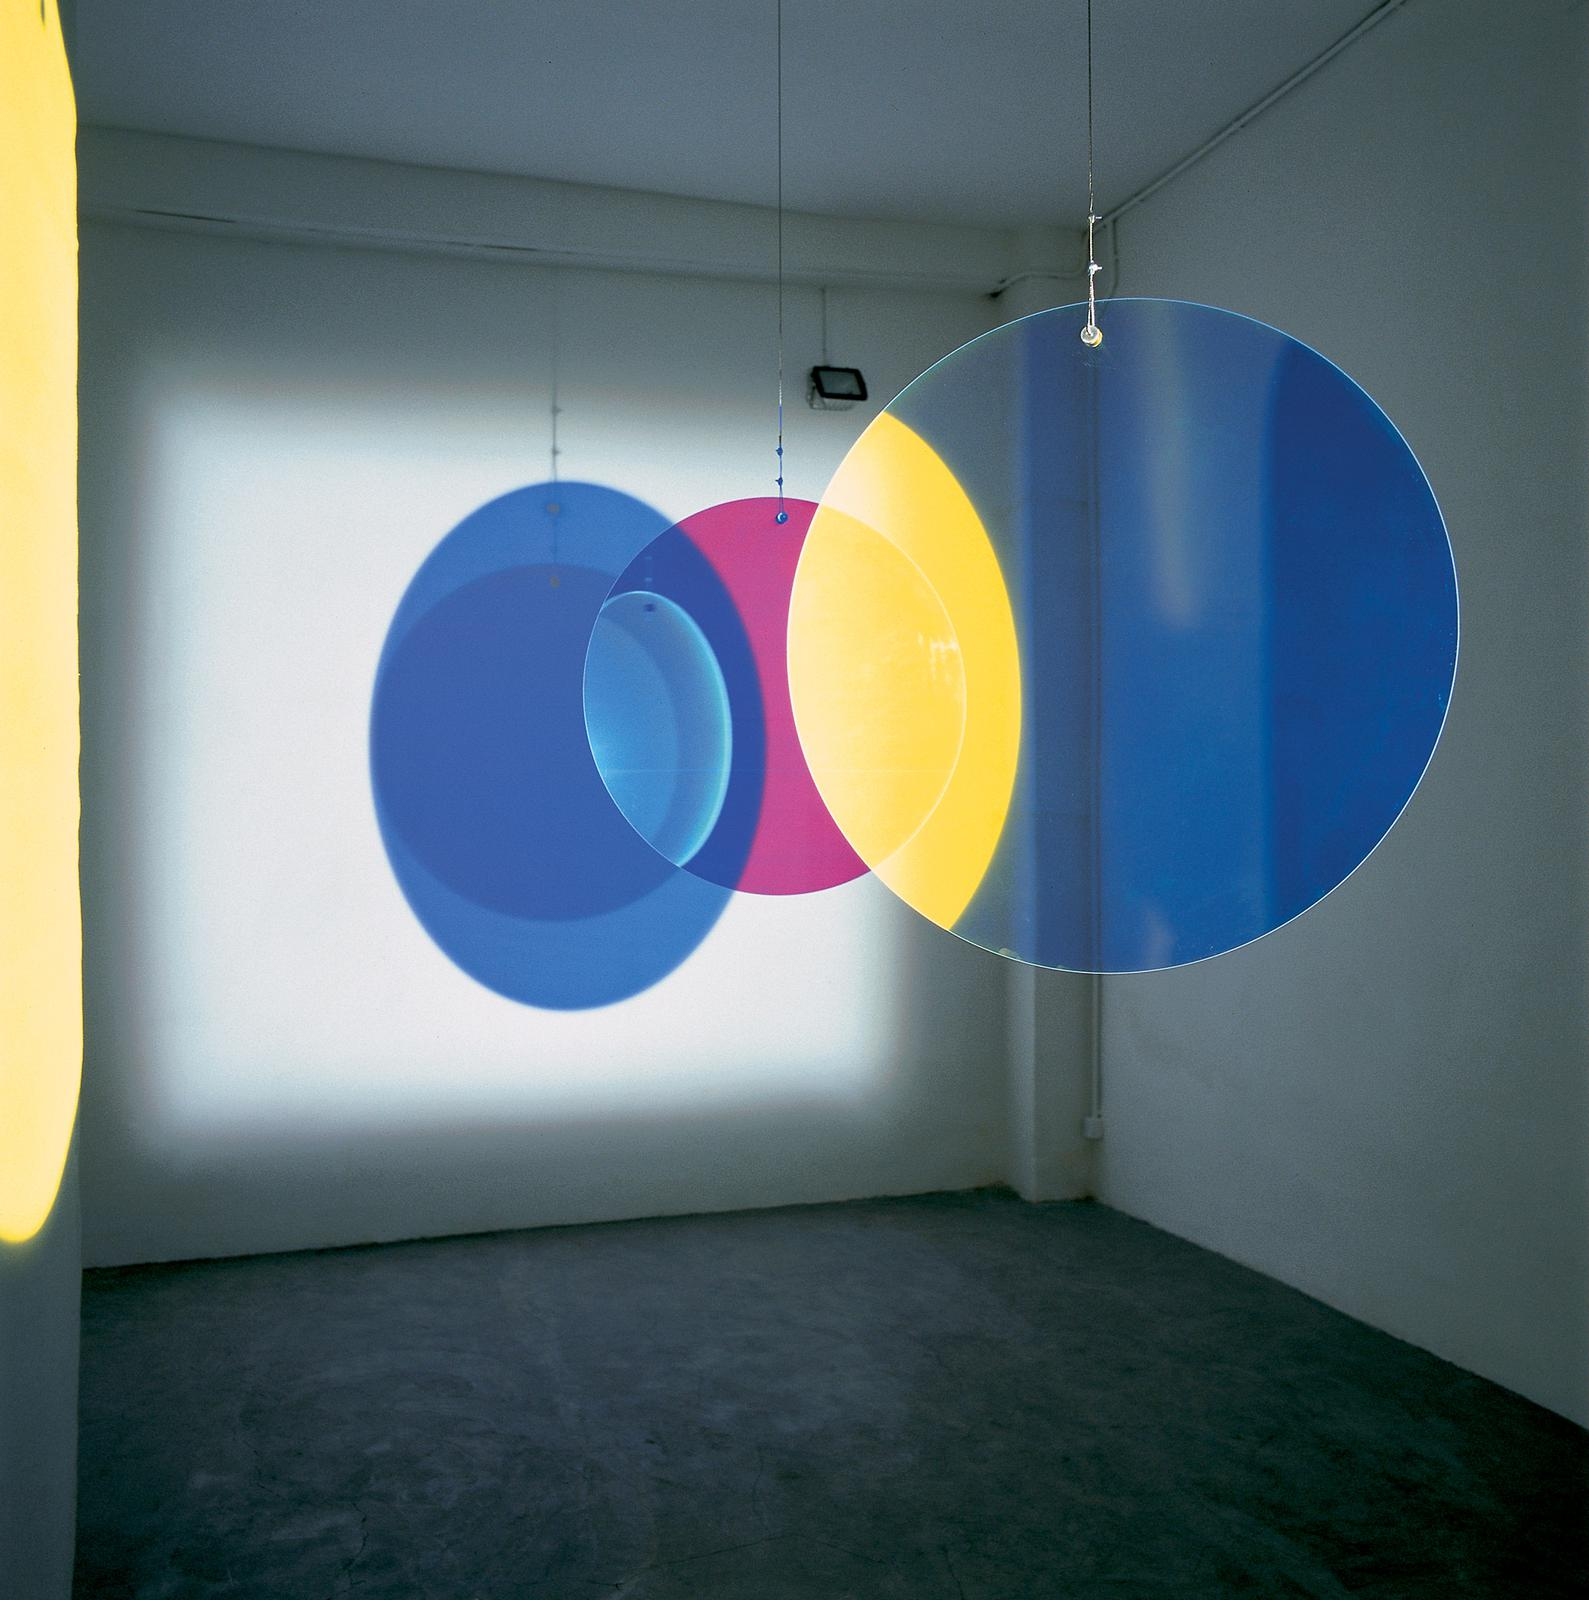 3 Spots Lamp Your Welcome Reflected • Artwork • Studio Olafur Eliasson